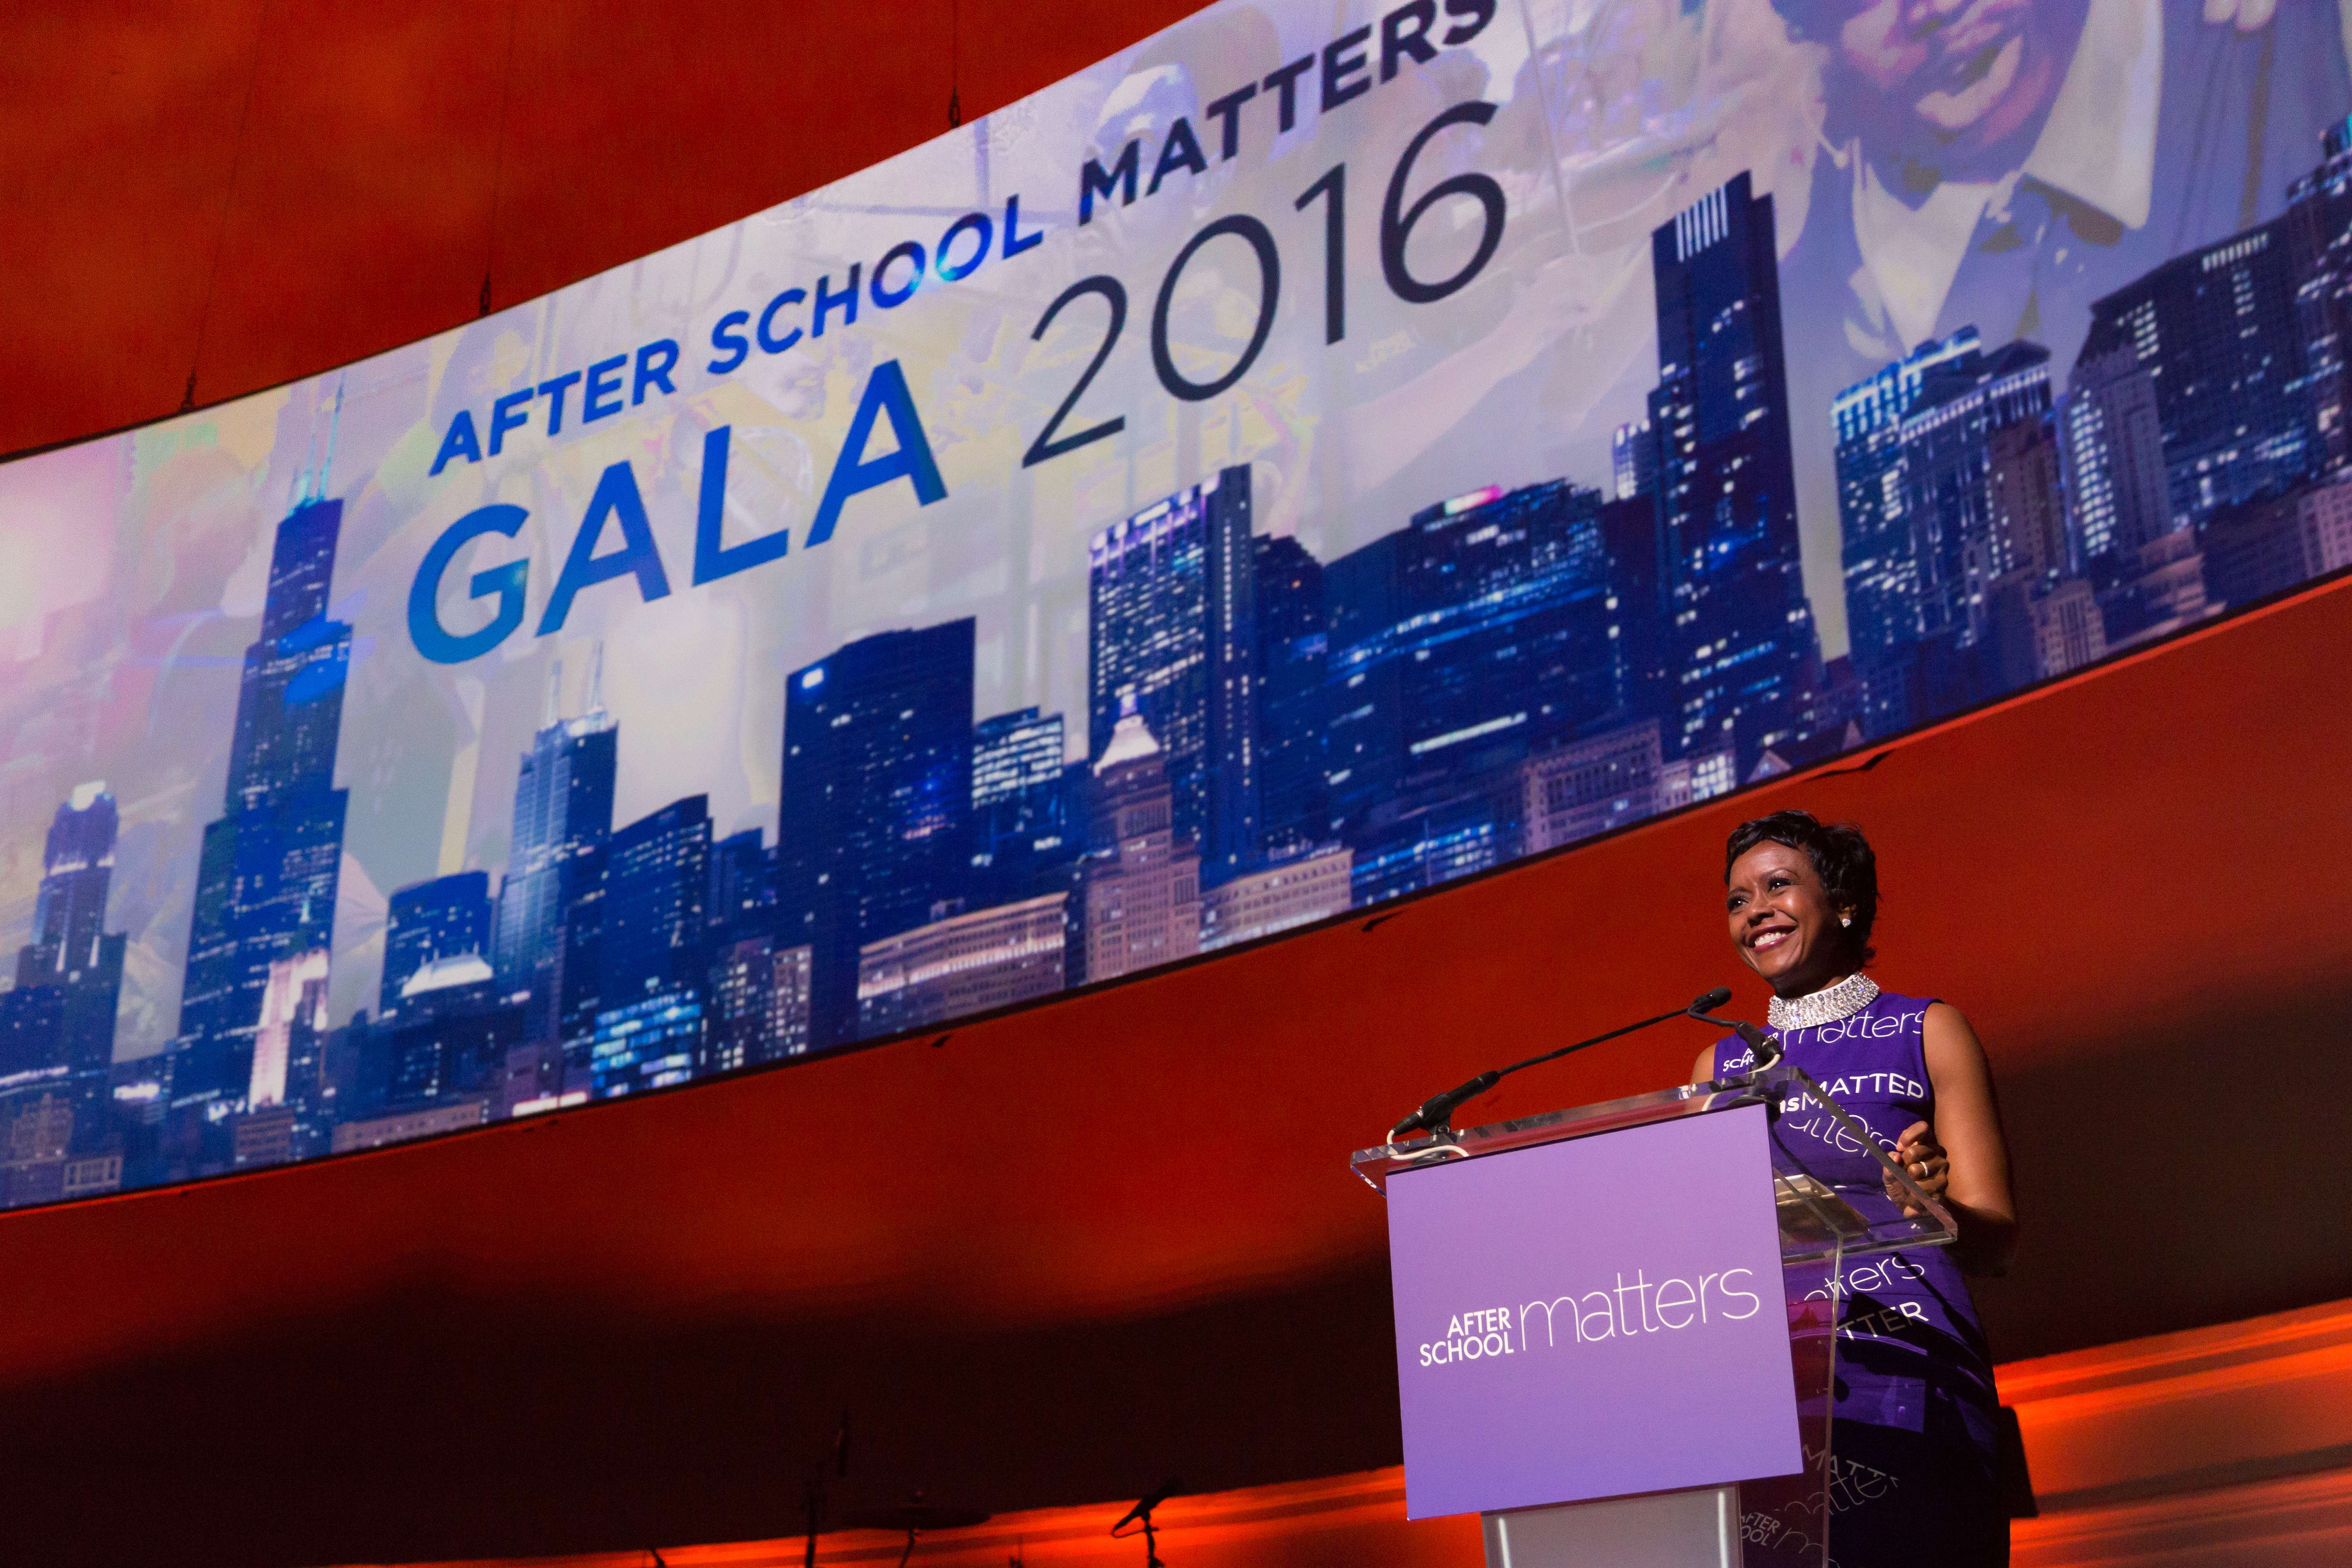 2017 06 juan martinez support page facebook - After School Matters Gala Funds Programs For Teens